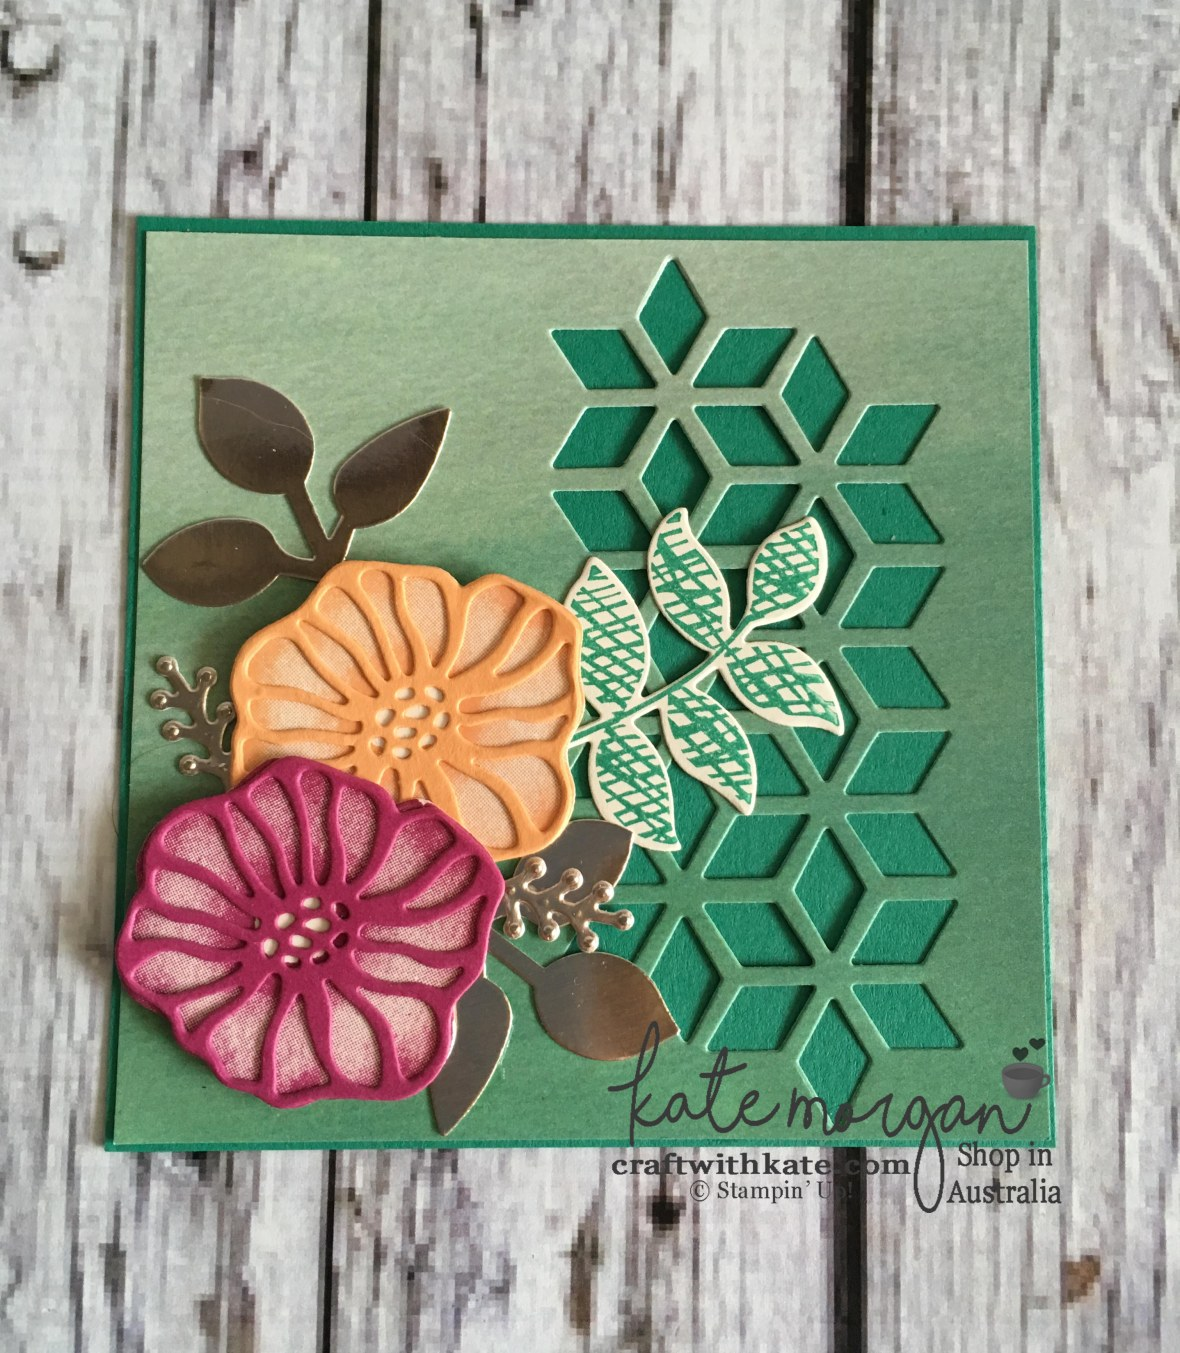 Handmade Feminine card using Stampin Up Oh So Eclectic by Kate Morgan, Independent Demonstrator, Australia.